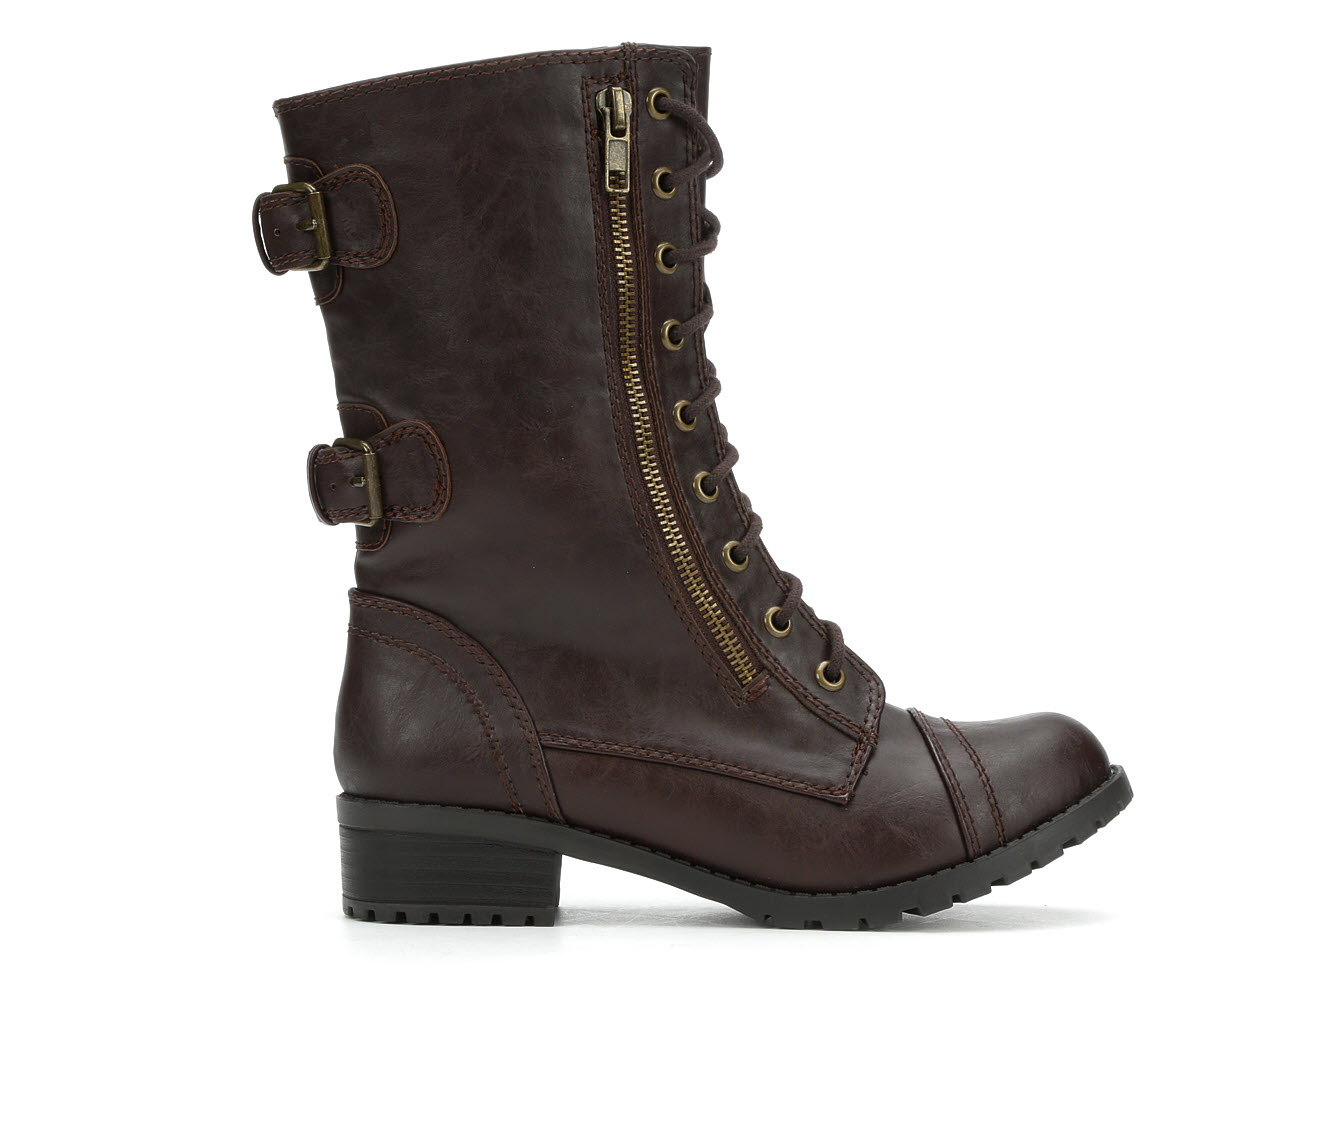 Unr8ed Dome Women's Boots (Brown - Faux Leather)